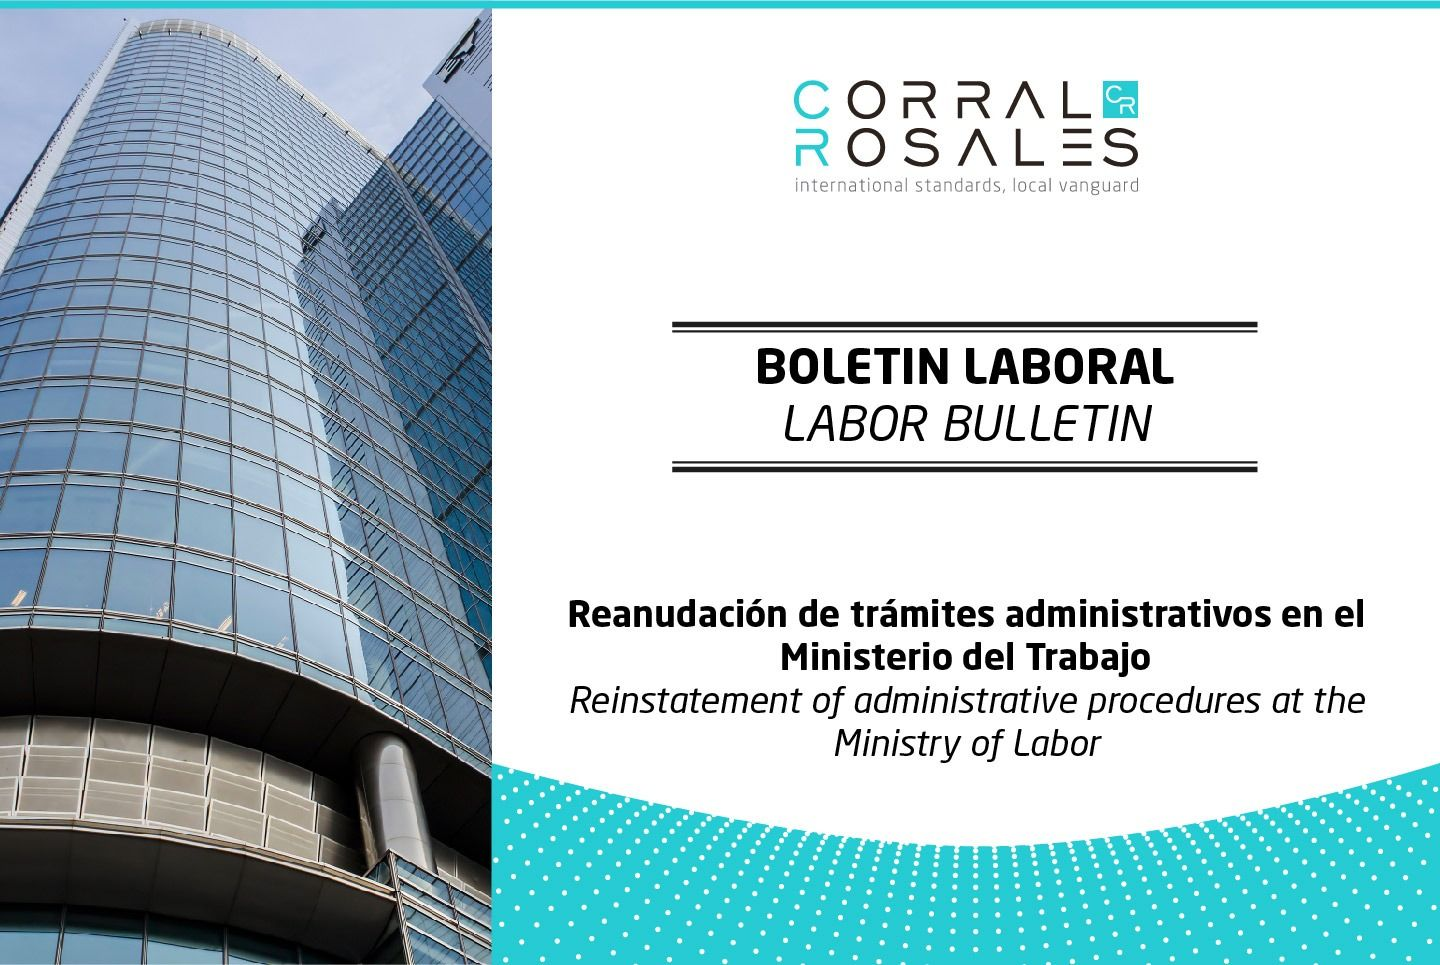 administrative-procedures-reinstatement-ministry-labor